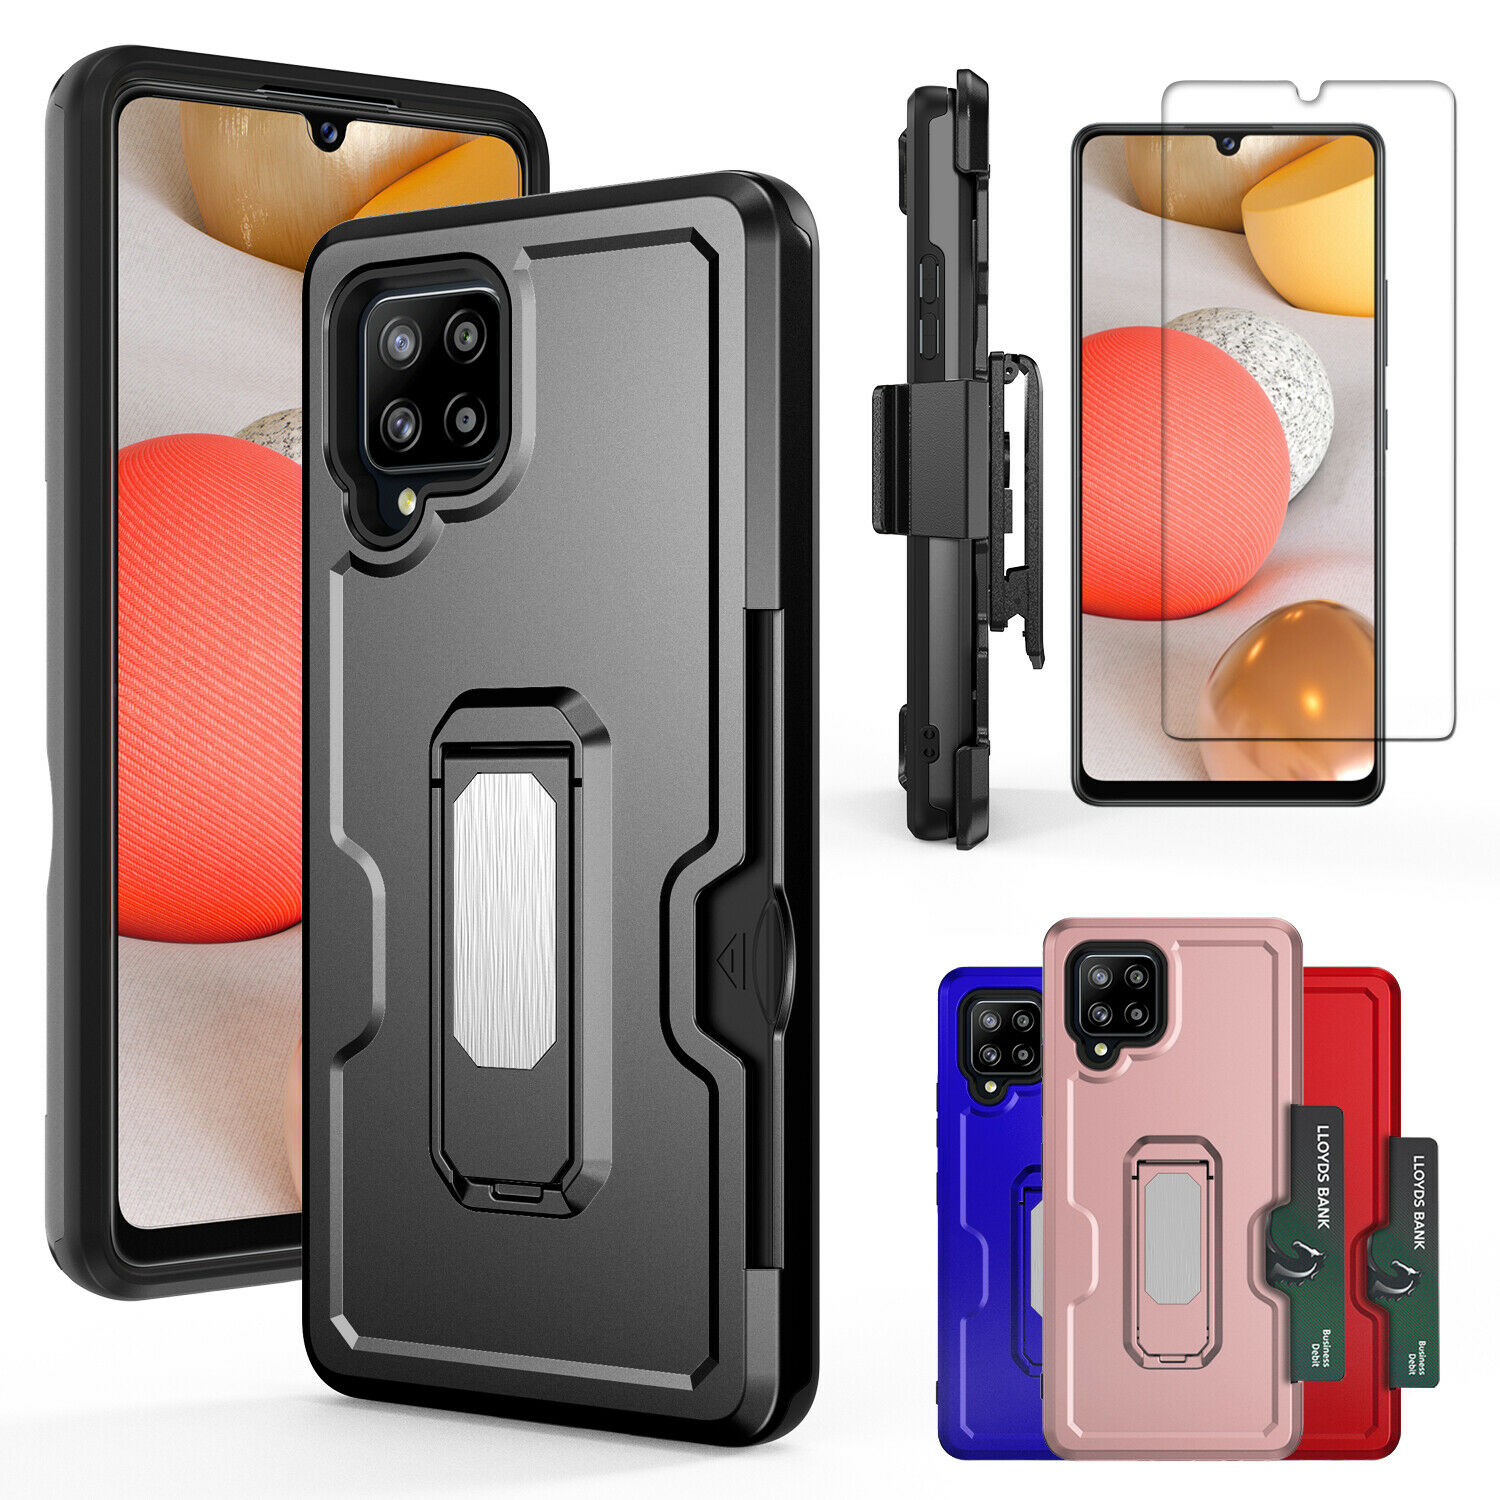 For Samsung Galaxy A42 5G Armor Case Stand Cover / Belt Clip / Screen Protector Cases, Covers & Skins